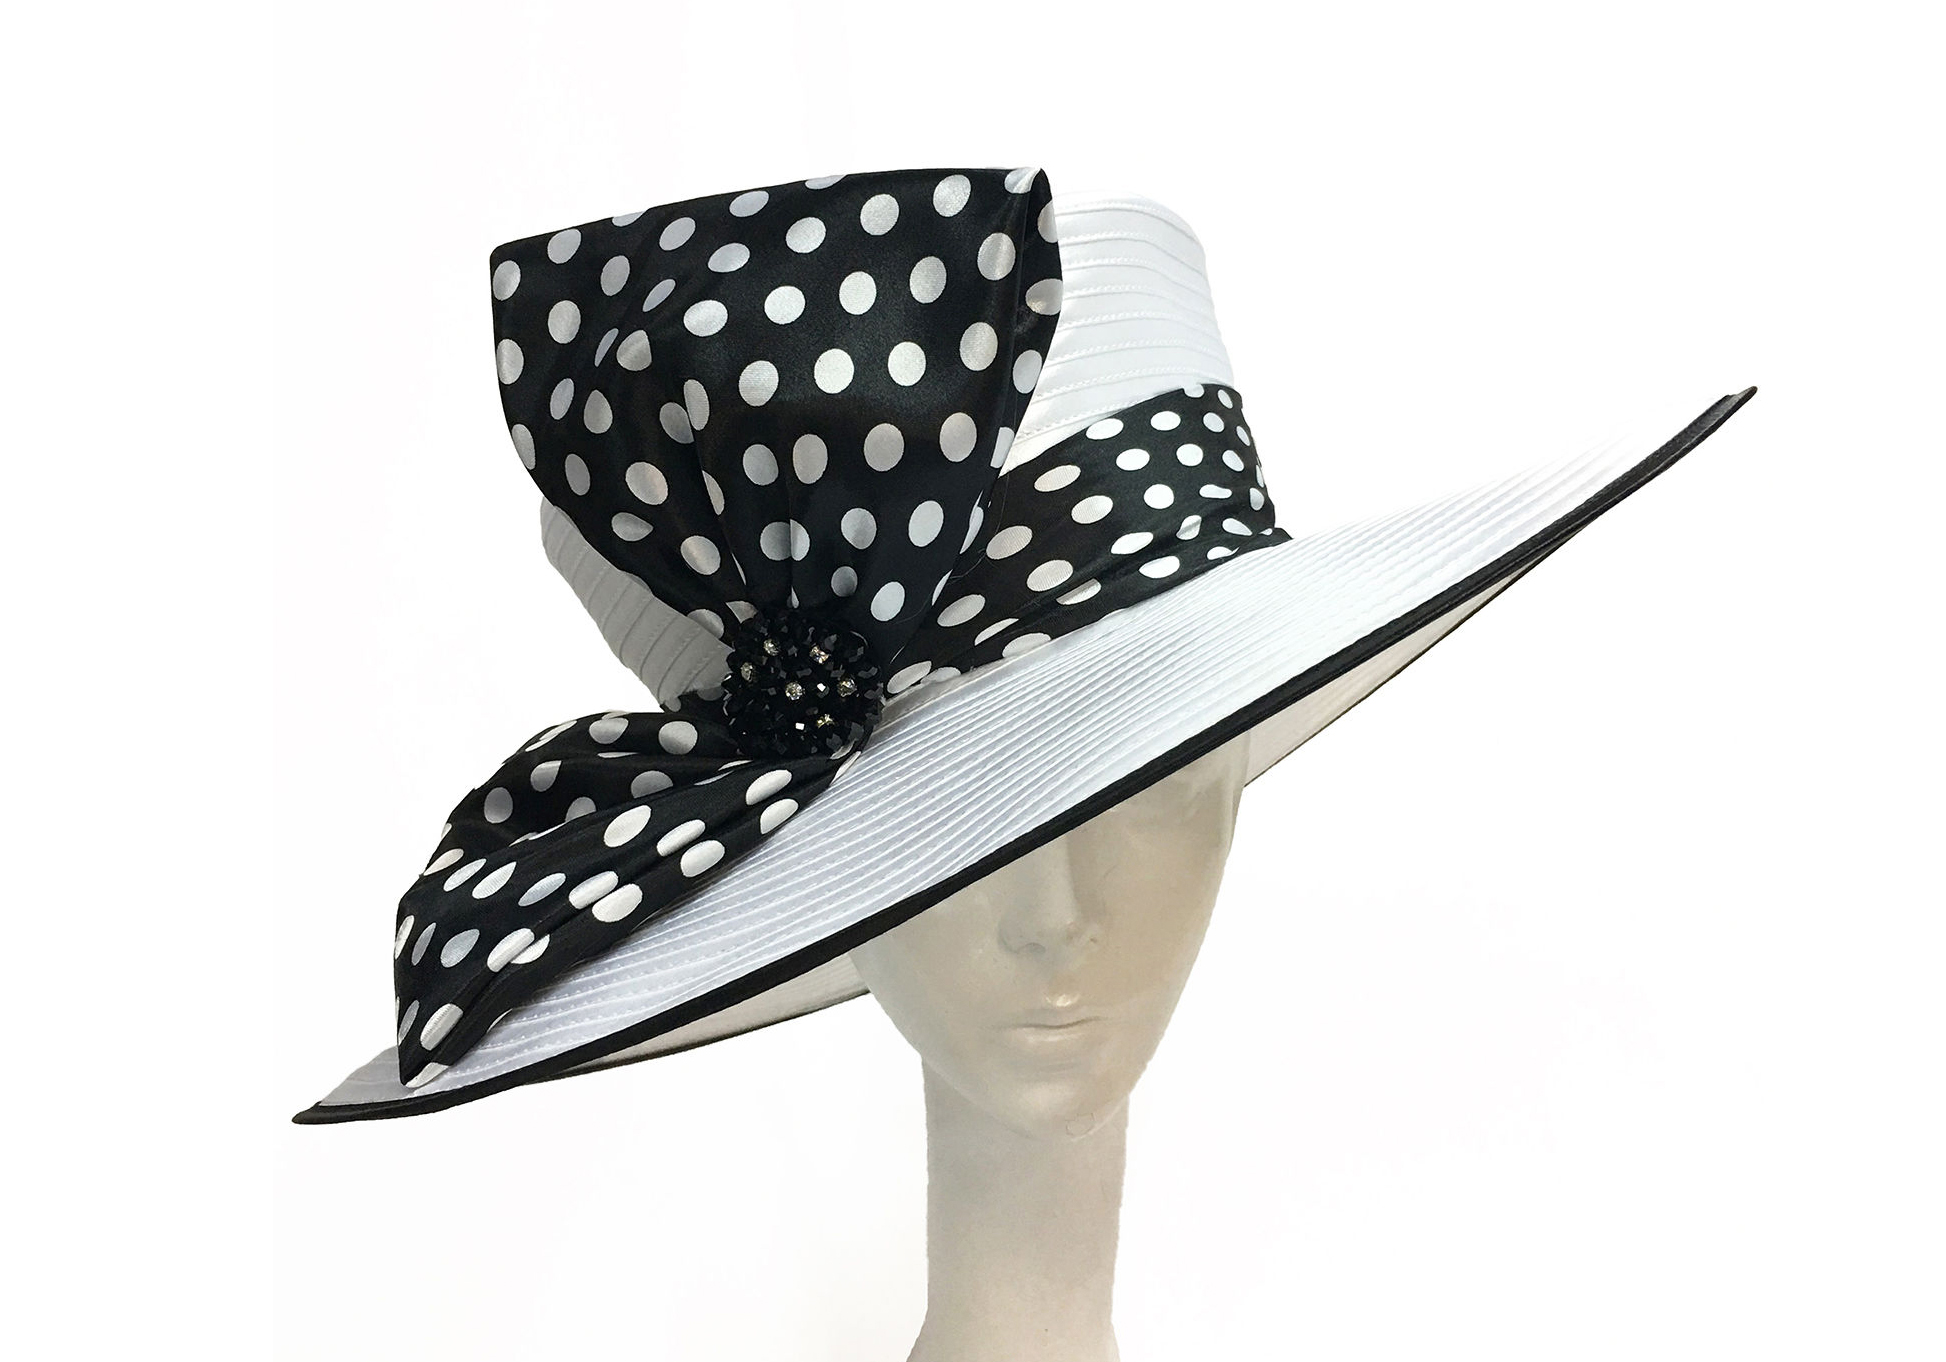 RX_1902 Easter Sunday Hats_Polka Dot Hat